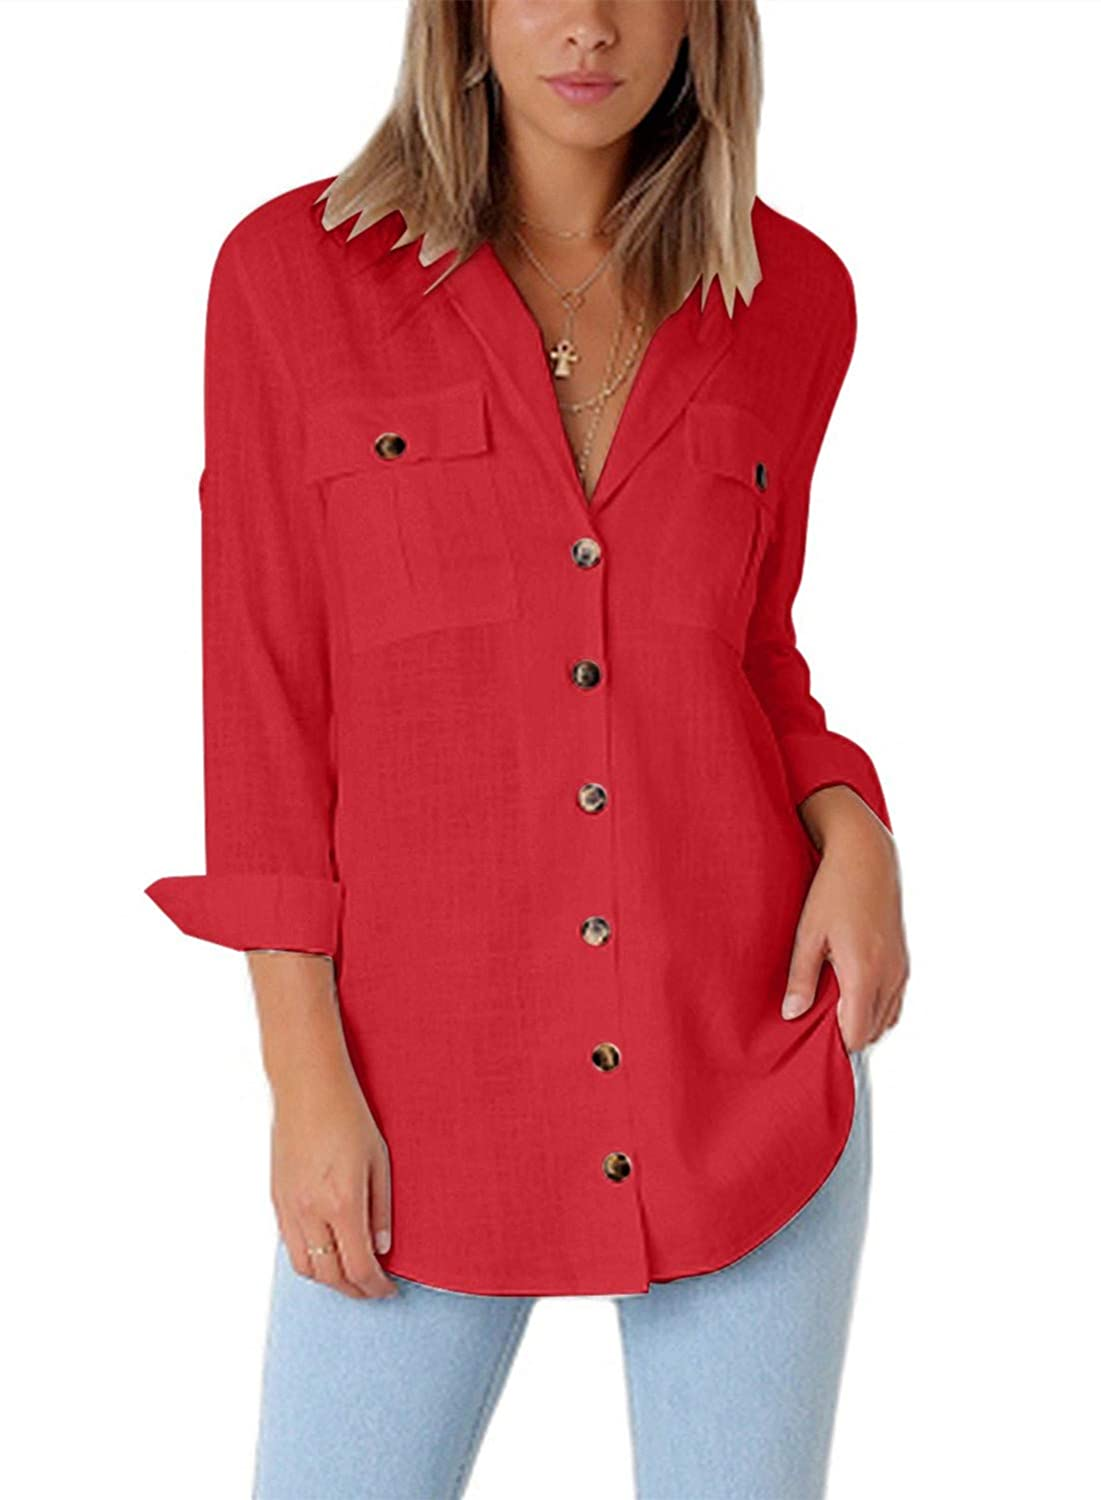 Astylish Women Casual Cuffed Sleeve Button Down Shirts Blouse Loose Tops Two Front Pockets AH251084-P